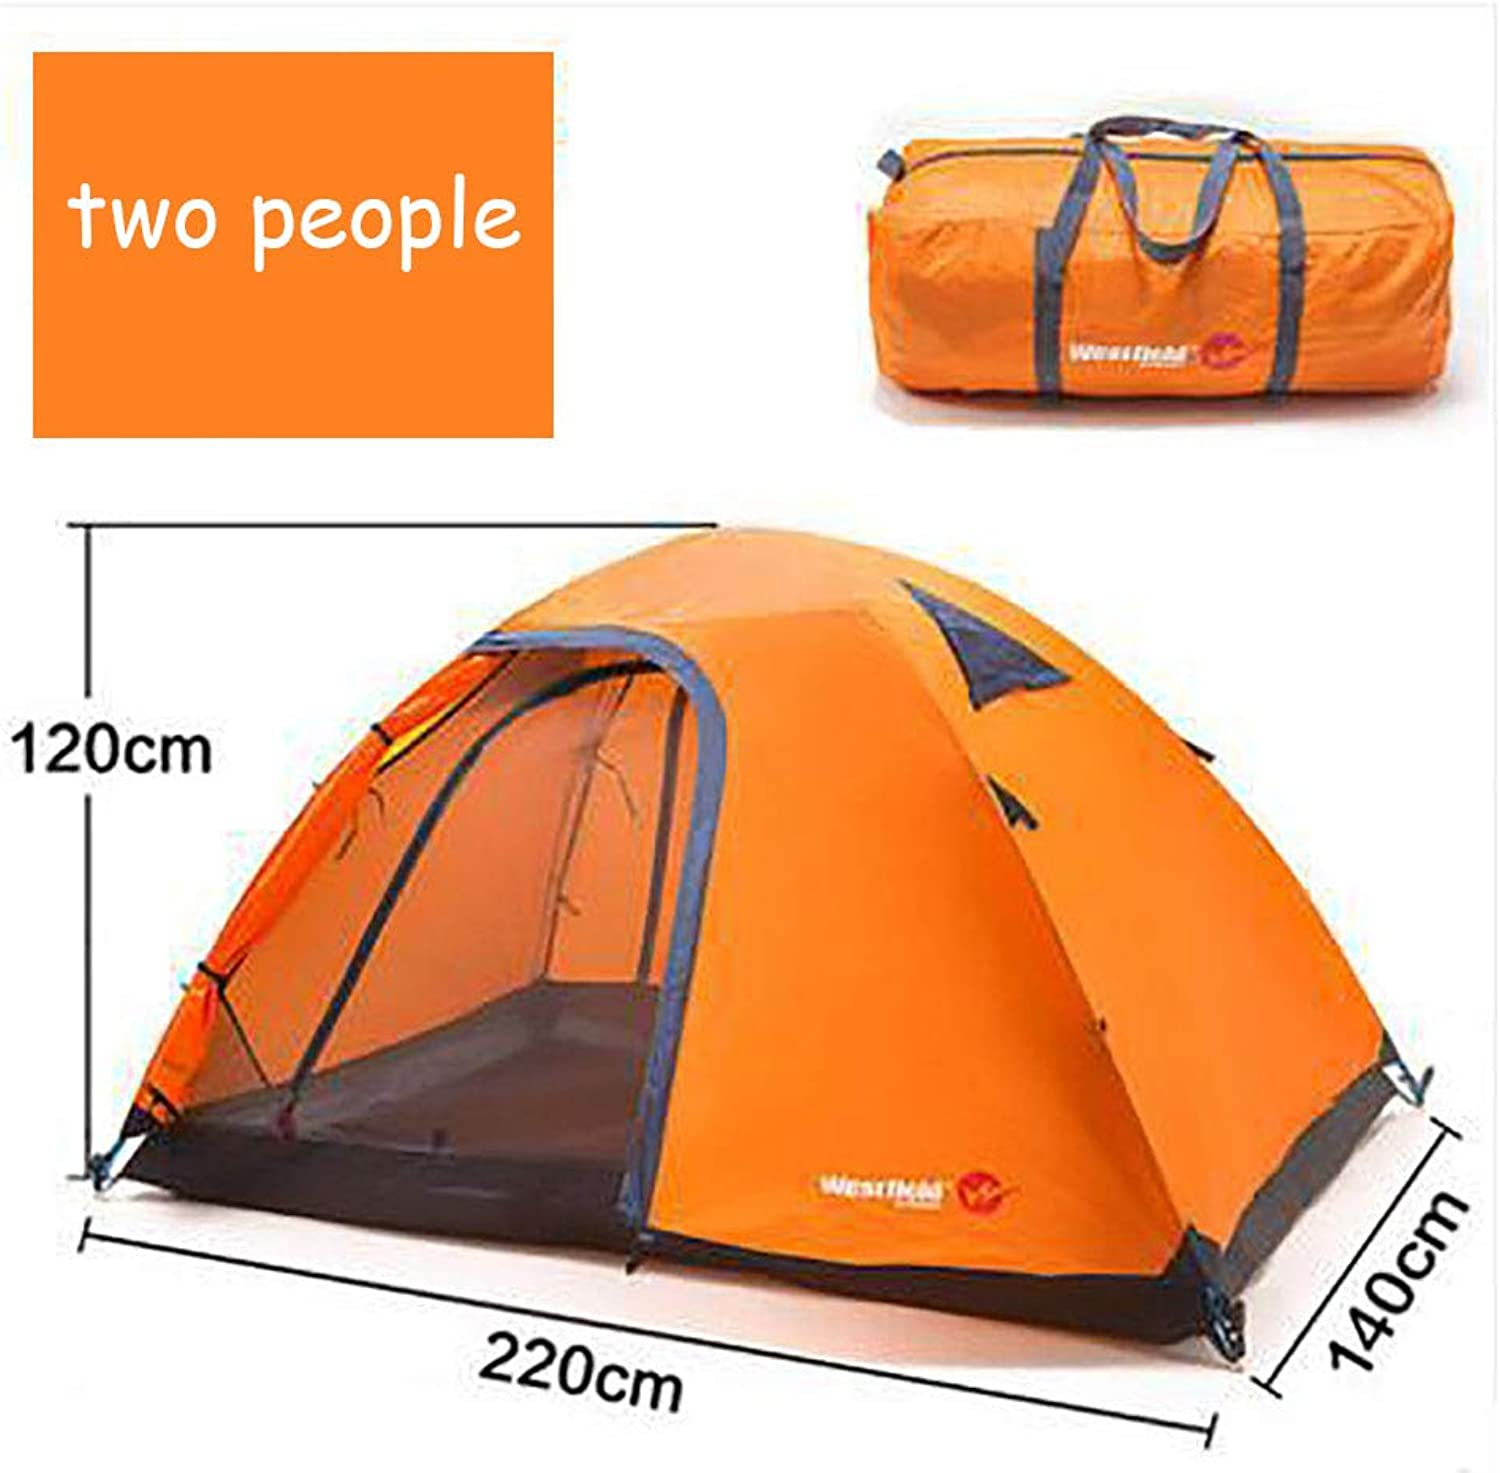 Portable Camping Tent, 2-3 Person Outdoor Waterproof Quick-Opening Tents Family Backpacking Tents Sun Shelter for Hiking Climbing Beach Garden Fishing Picnic(Double Layer),B,twopeople